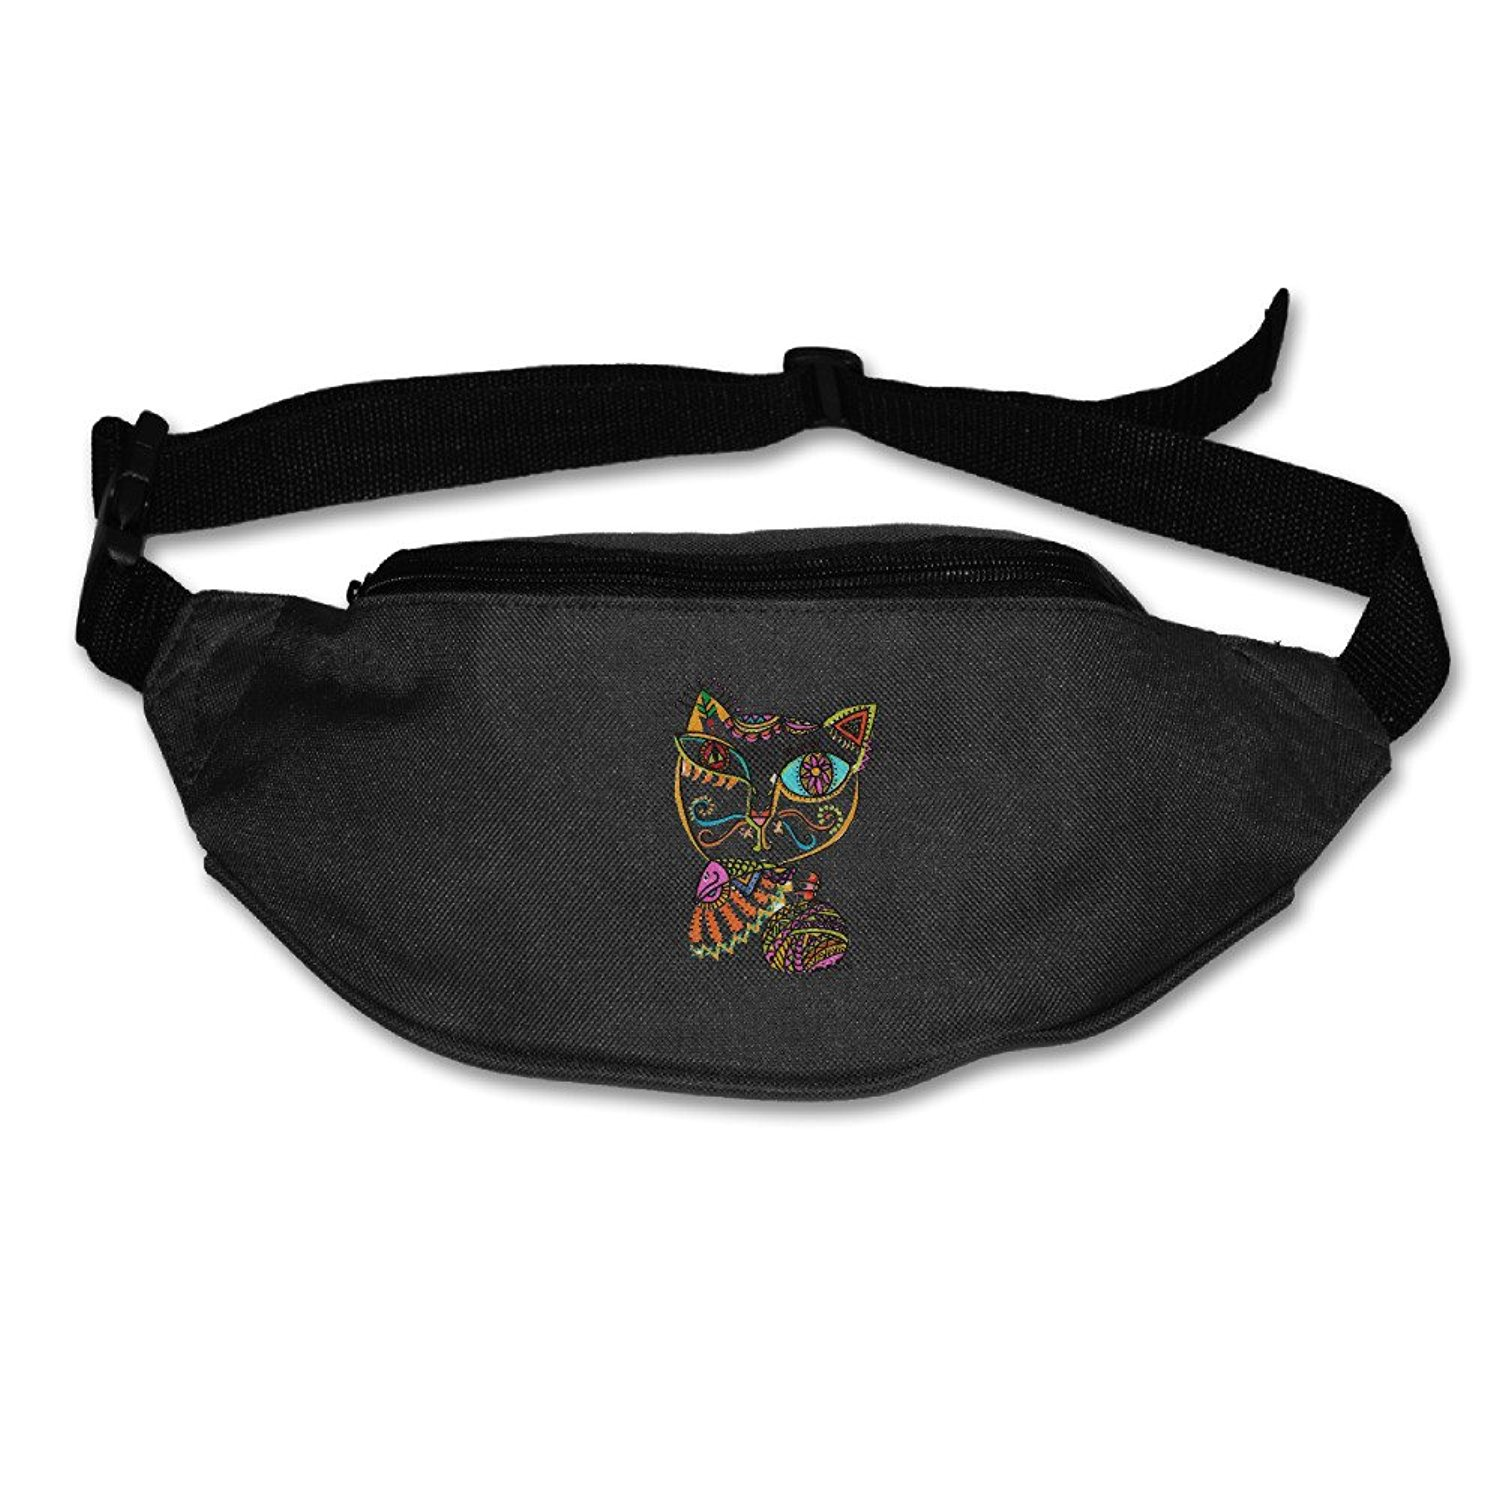 Africa Tiger Head Sport Waist Pack Fanny Pack Adjustable For Run